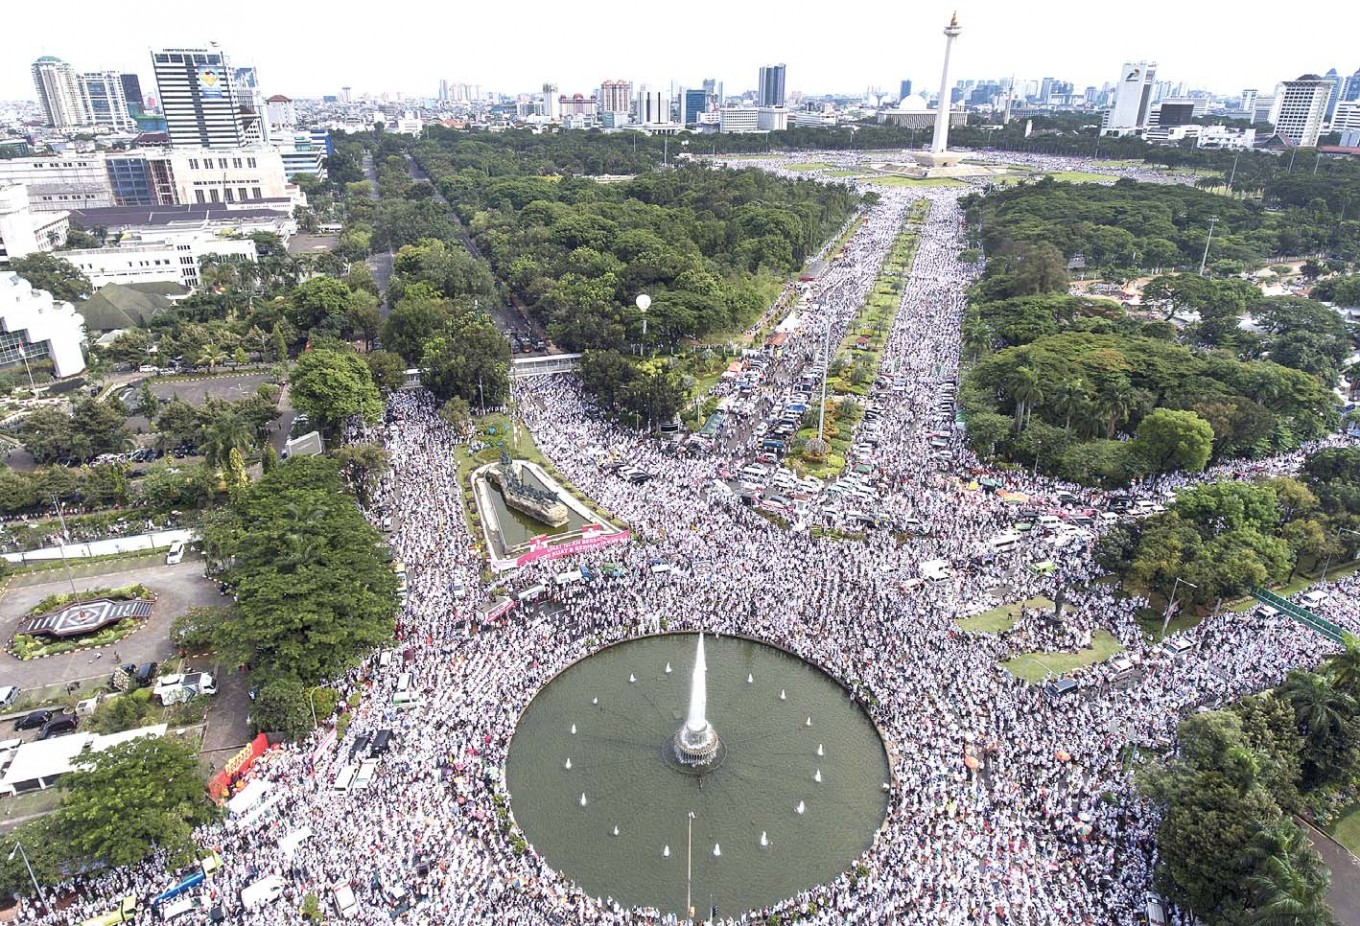 Mass prayers: Hundreds thousands of Muslims gather and chant prayers during a rally stretching from Bank Indonesia to the Monument National in Central Jakarta on Dec. 2.